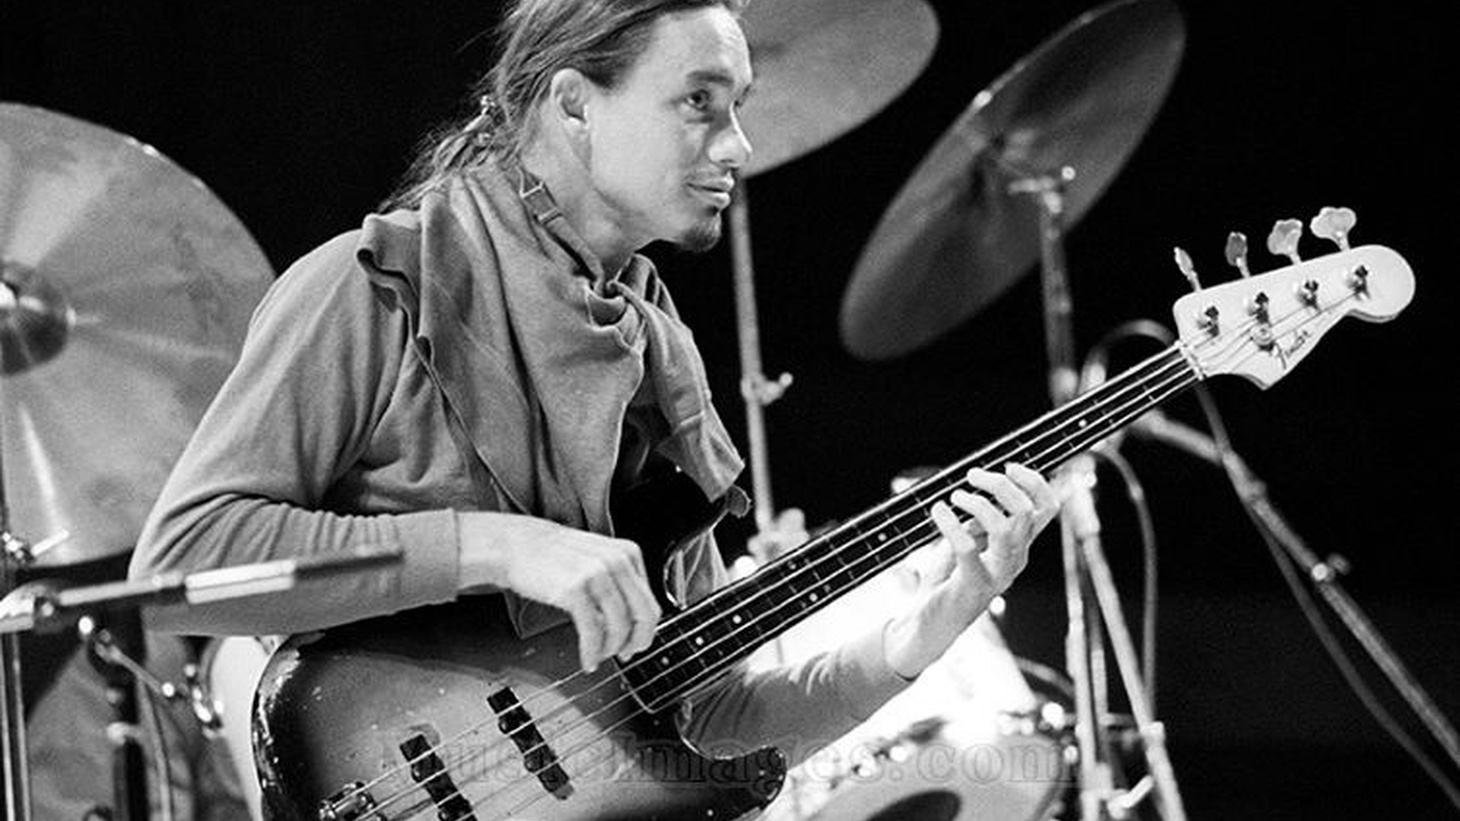 Musician Robert Trujillo joins Elvis Mitchell to discuss the journey from found footage to family input of the visionary bass player Jaco Pastorius while producing the documentary Jaco: The Film.